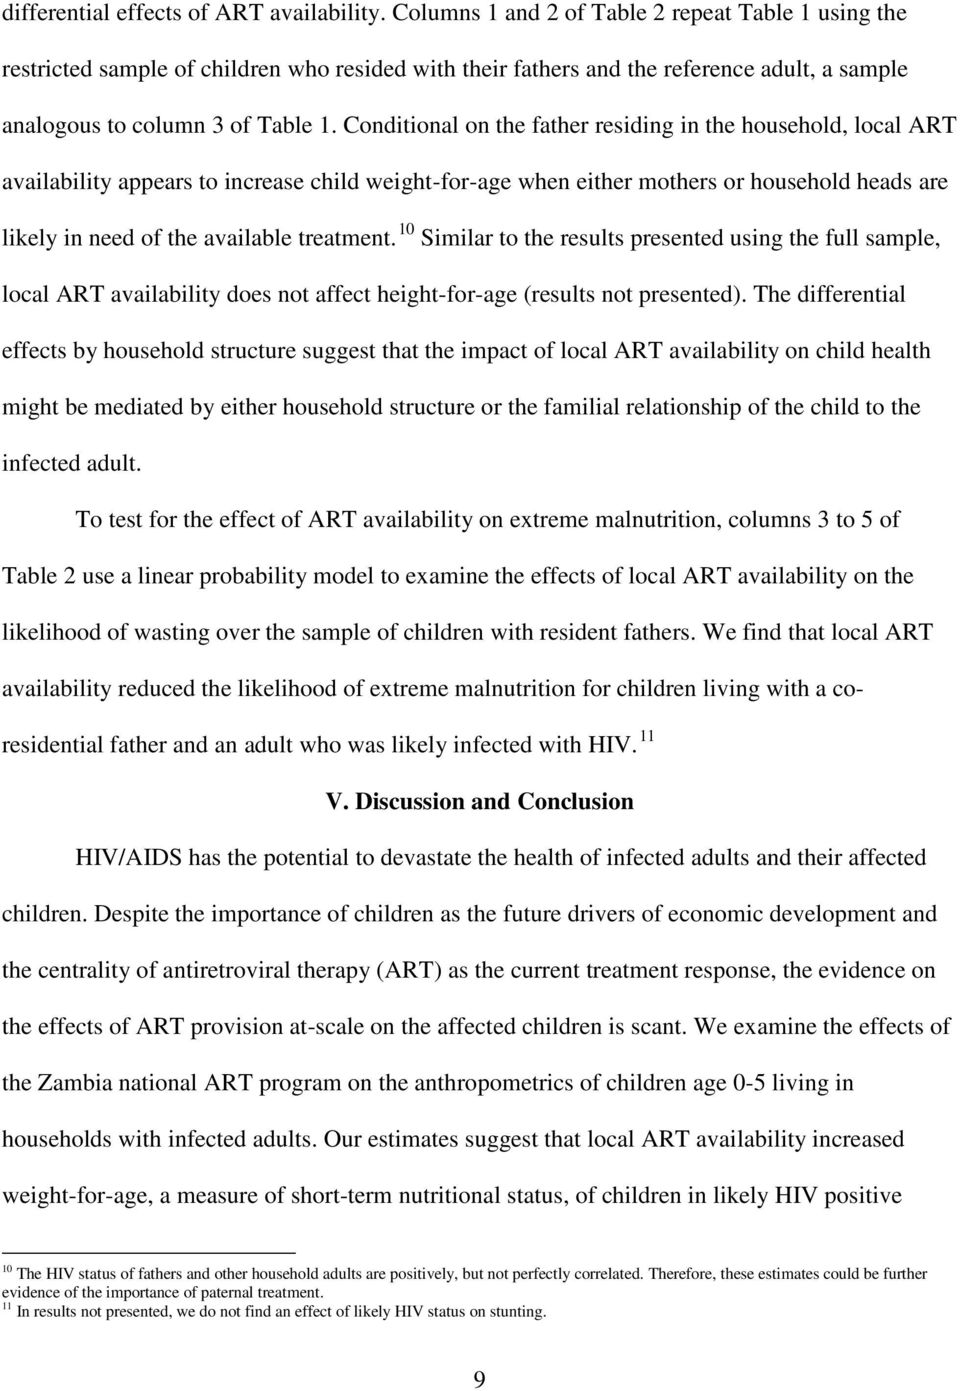 Conditional on the father residing in the household, local ART availability appears to increase child weight-for-age when either mothers or household heads are likely in need of the available